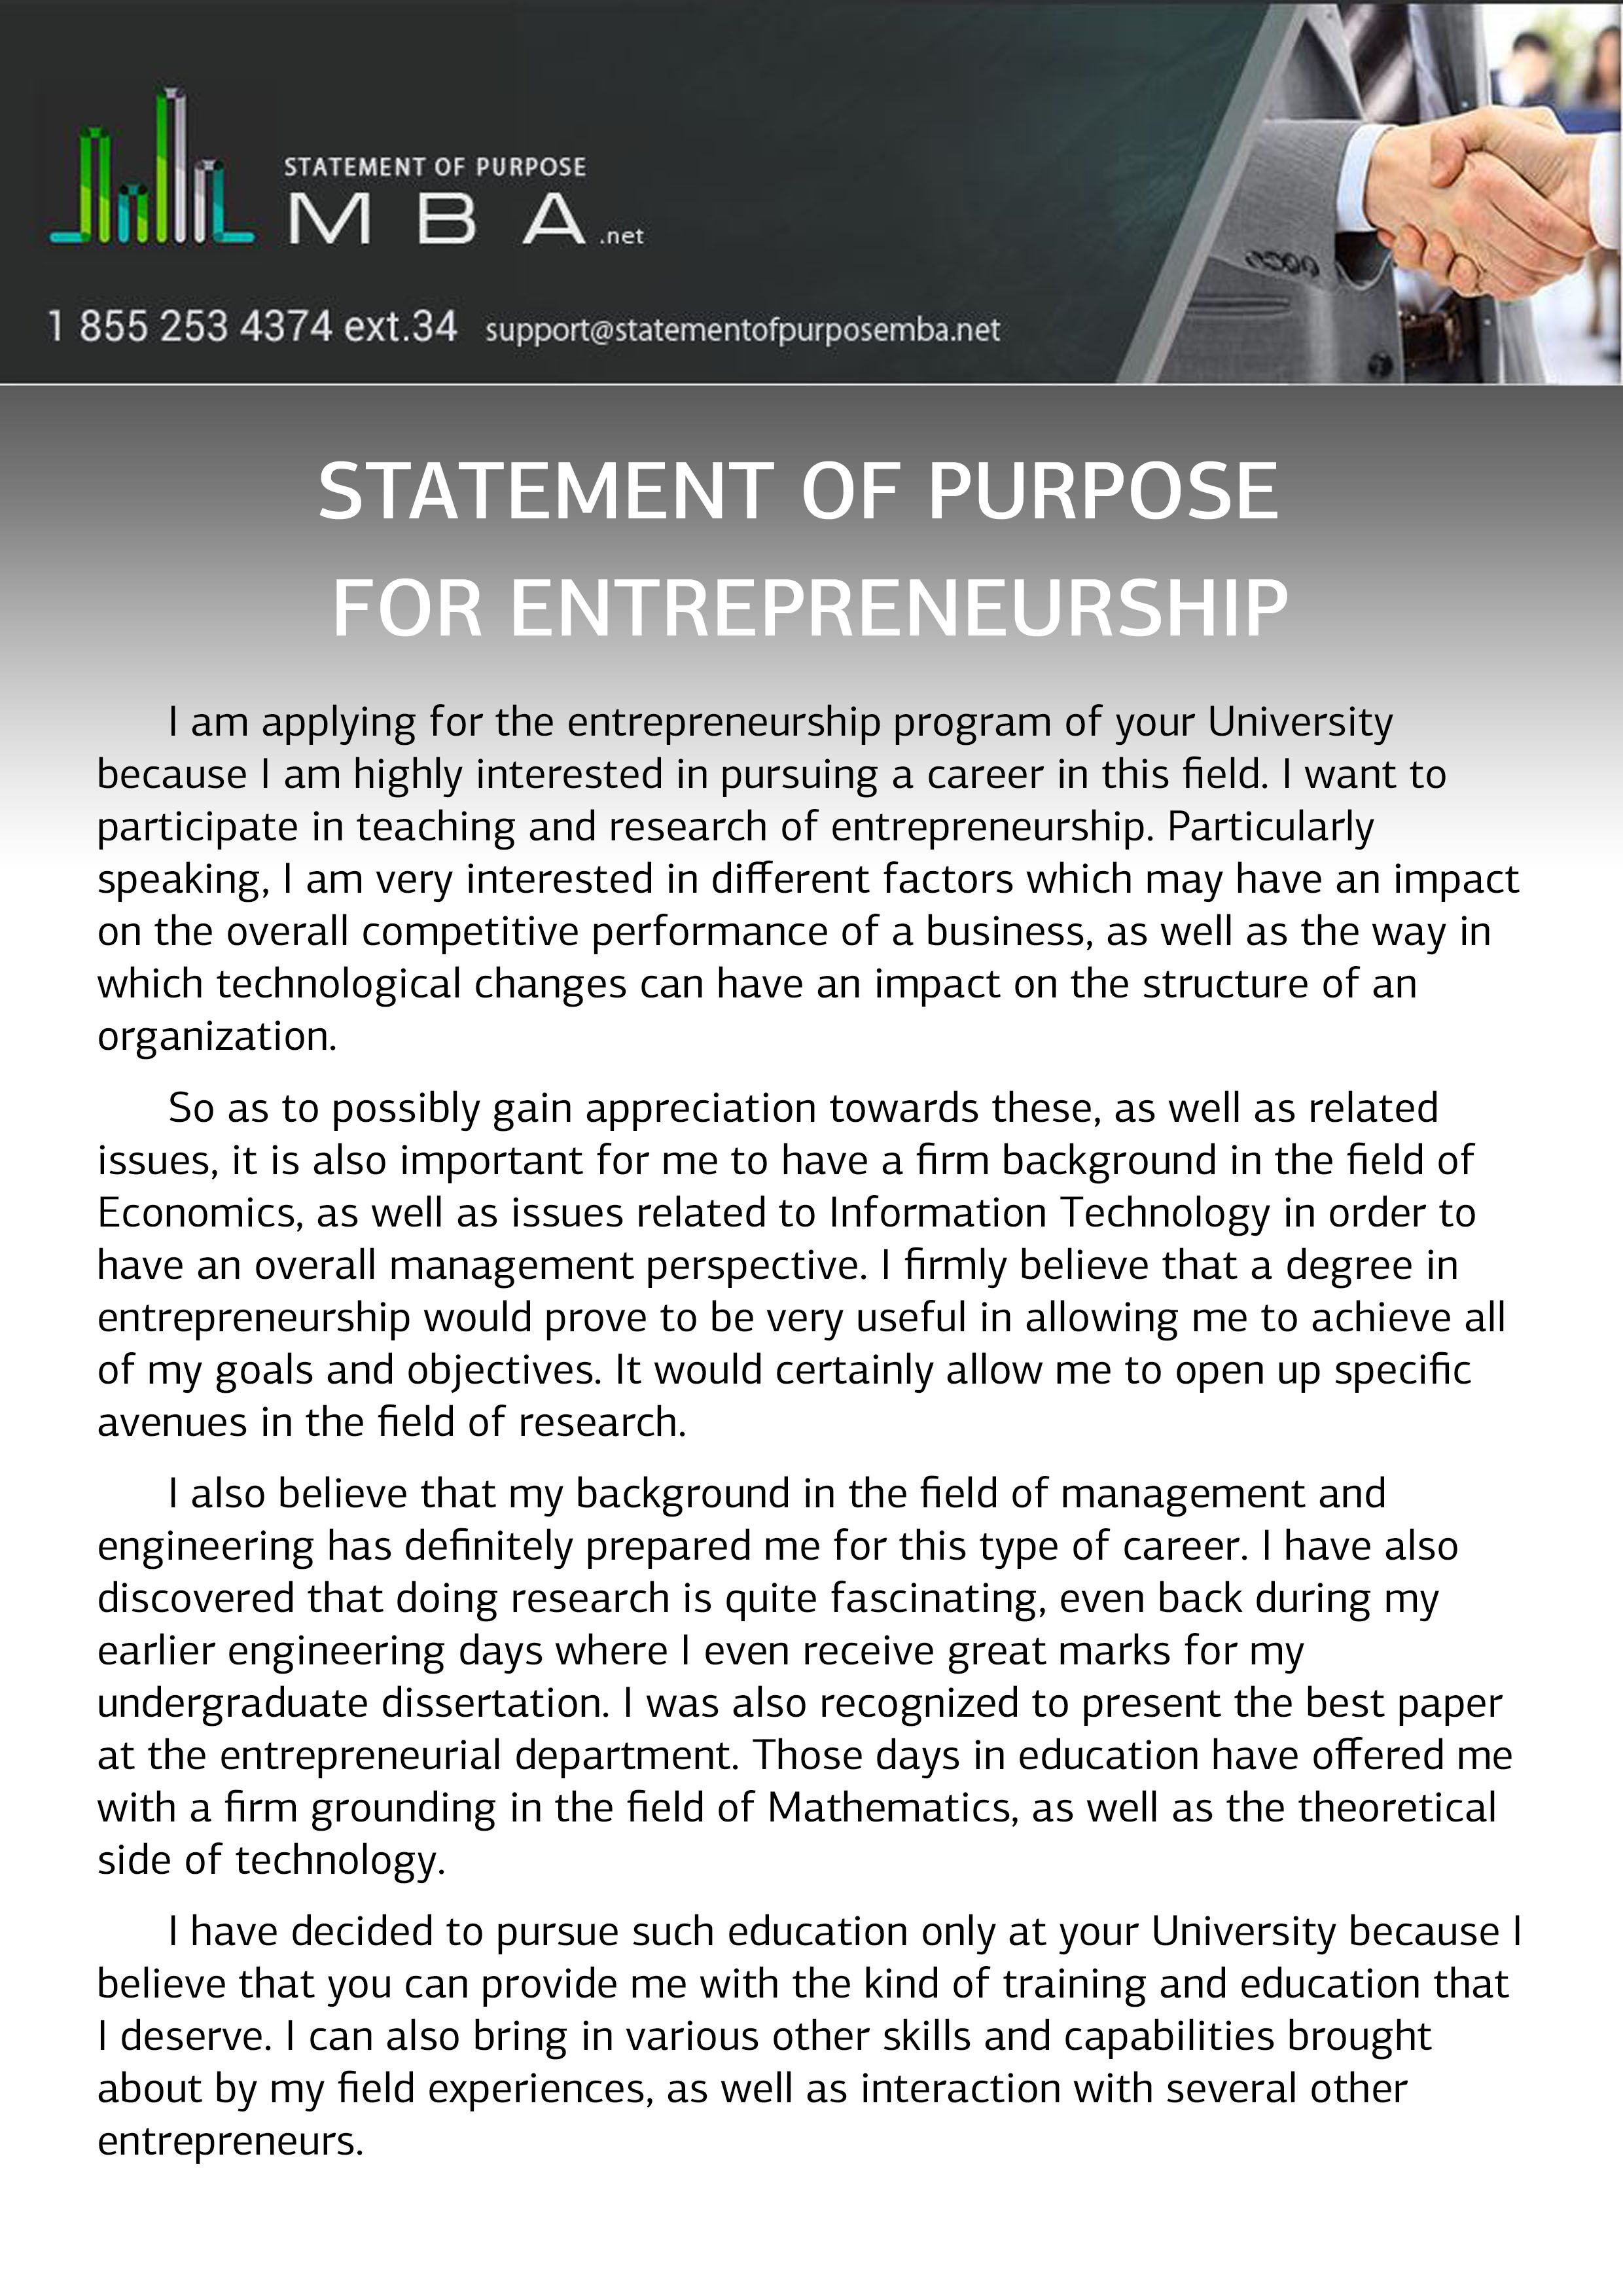 Are you looking for top mba statement of purpose for are you looking for top mba statement of purpose for entrepreneurship you can check our spiritdancerdesigns Gallery